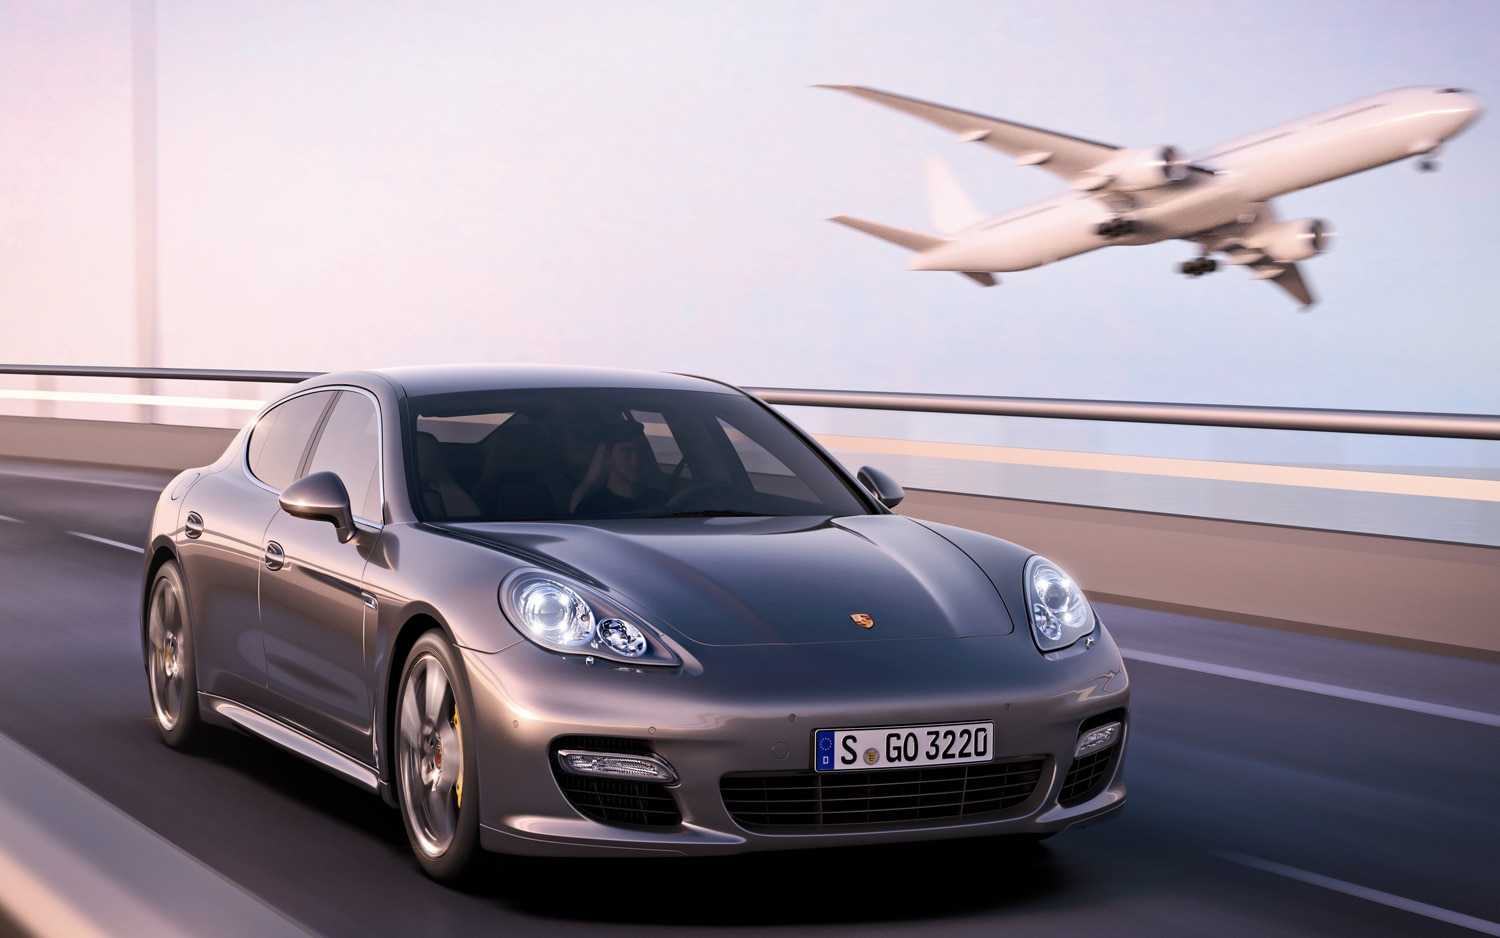 2012 Porsche Panamera Turbo S Front Three Quarter1